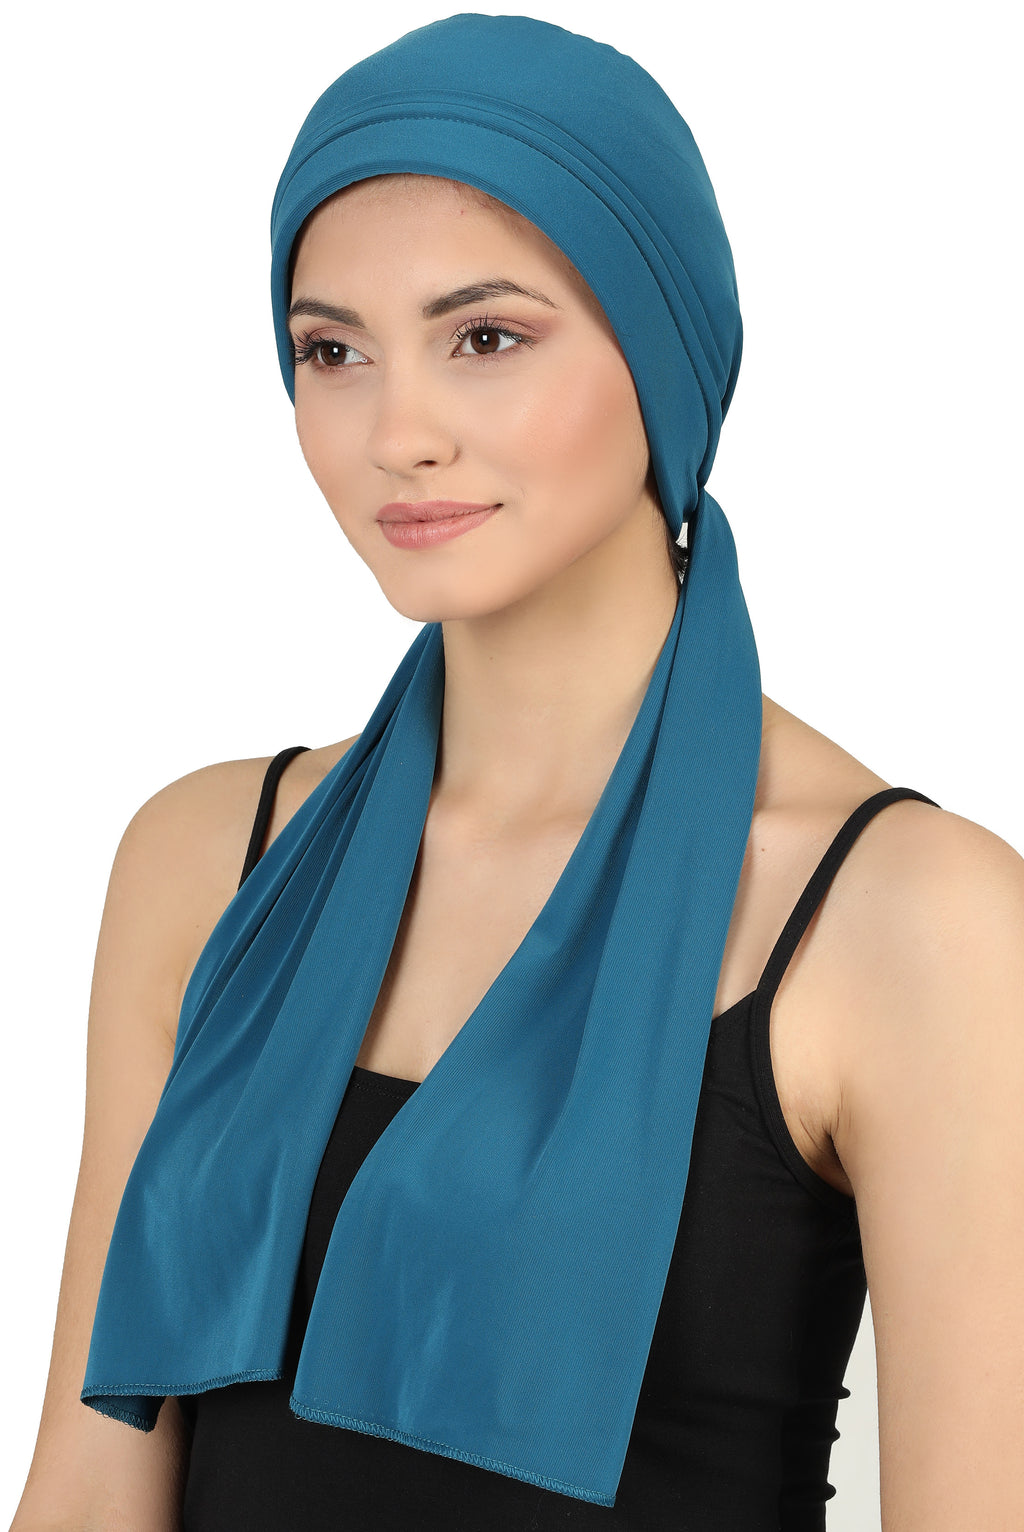 Versatile Headwear with Long Tails - Teal